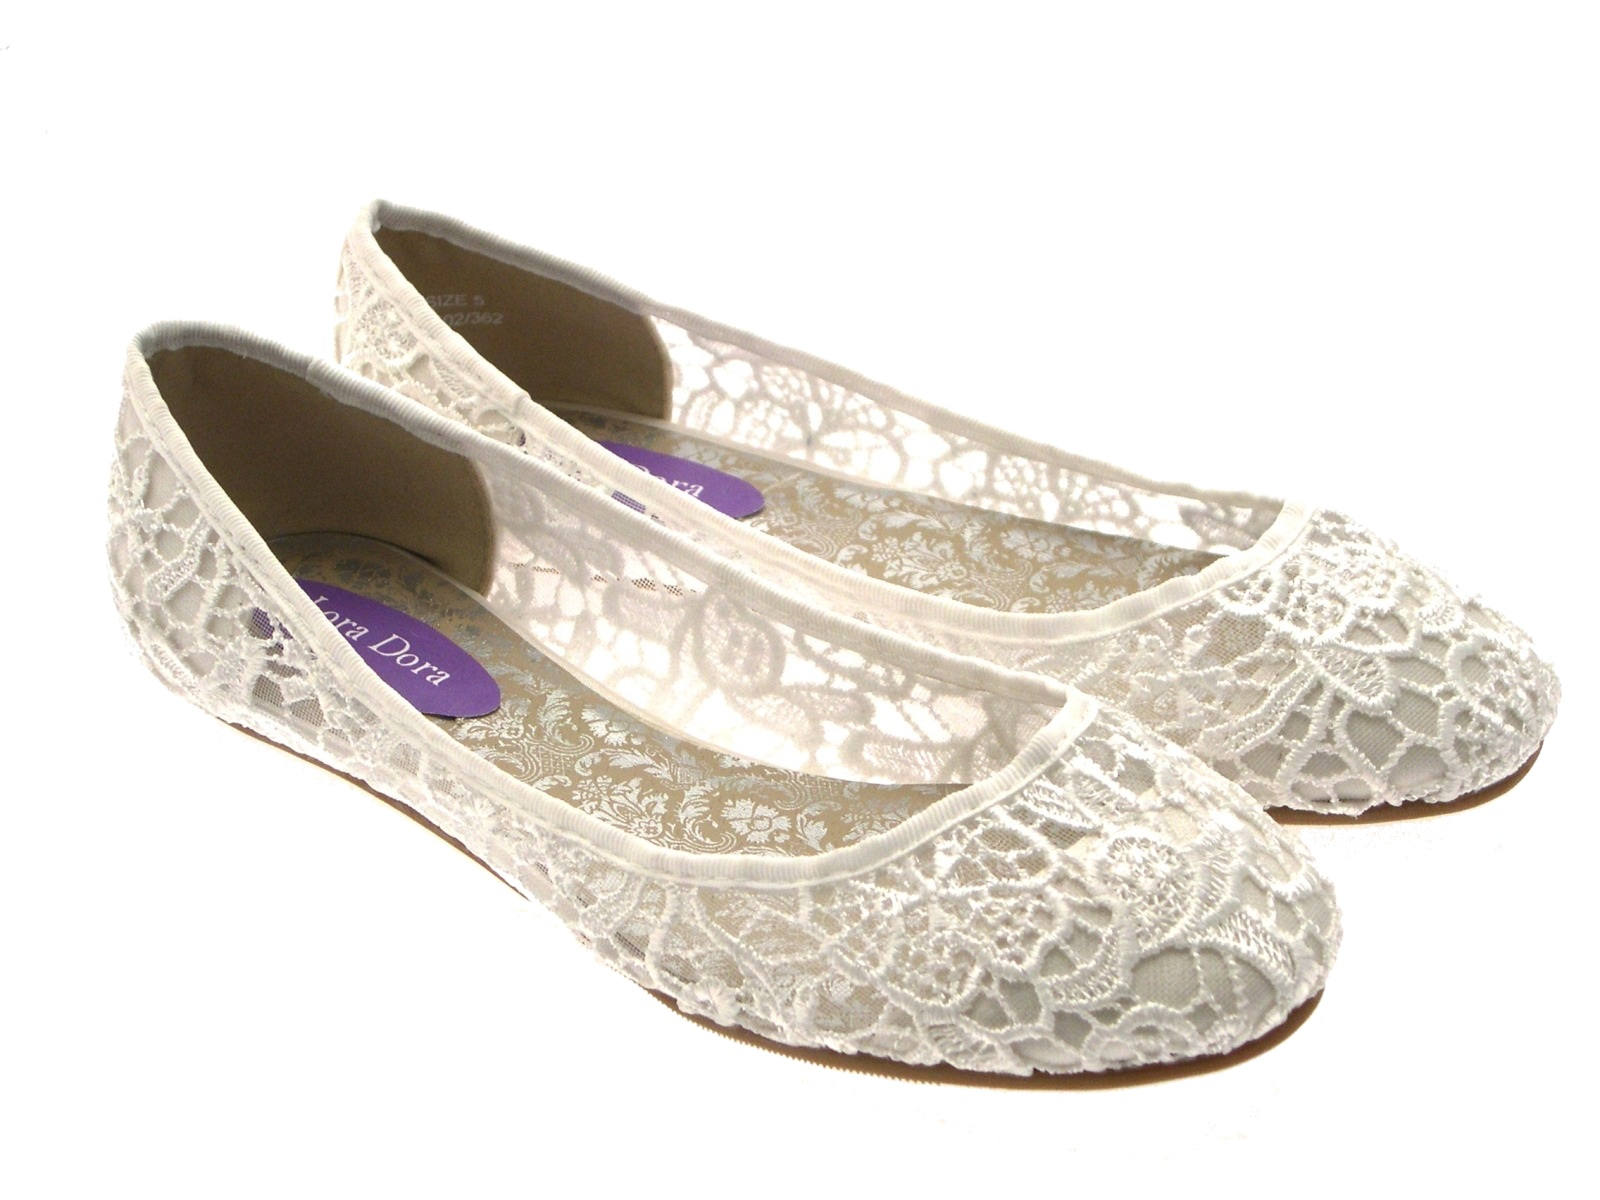 flat lace bridal shoes - photo #17